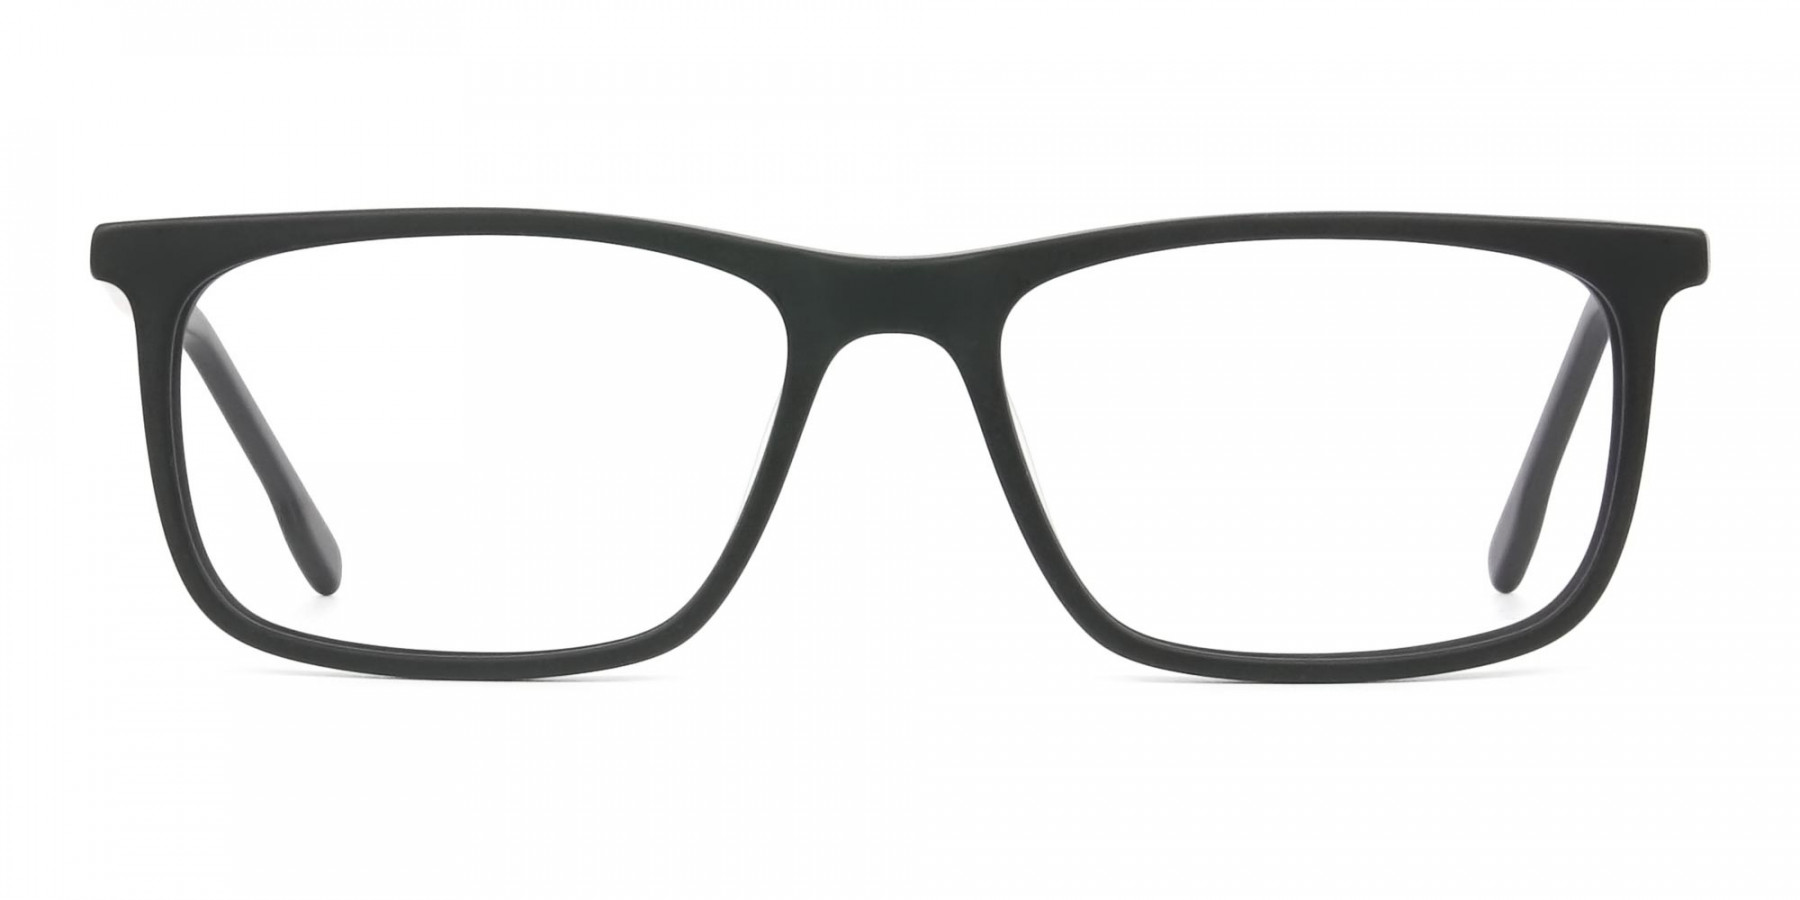 Matte Black & Red Acetate Spectacles - 1